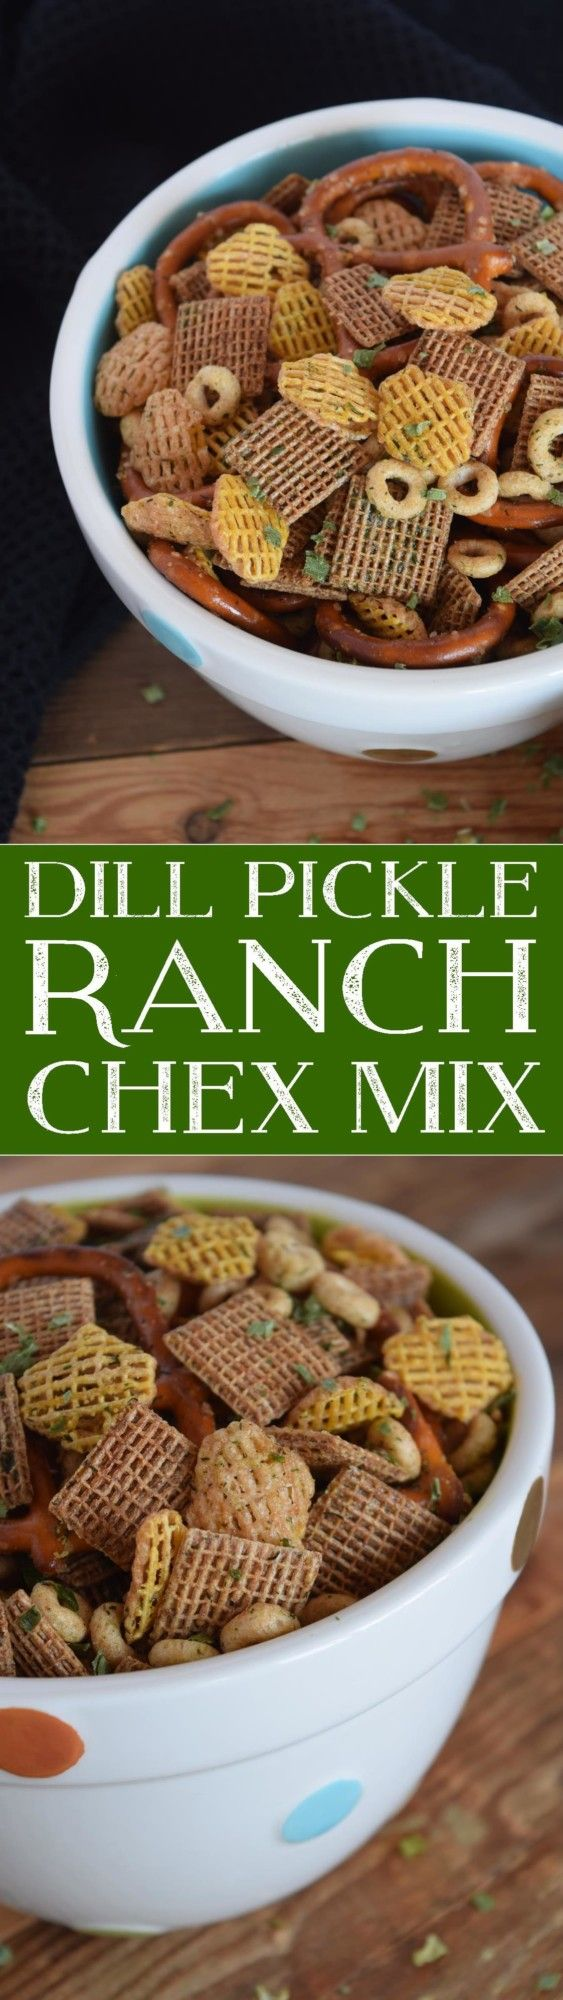 dill-pickle-ranch-chex-mix                                                                                                                                                                                 More